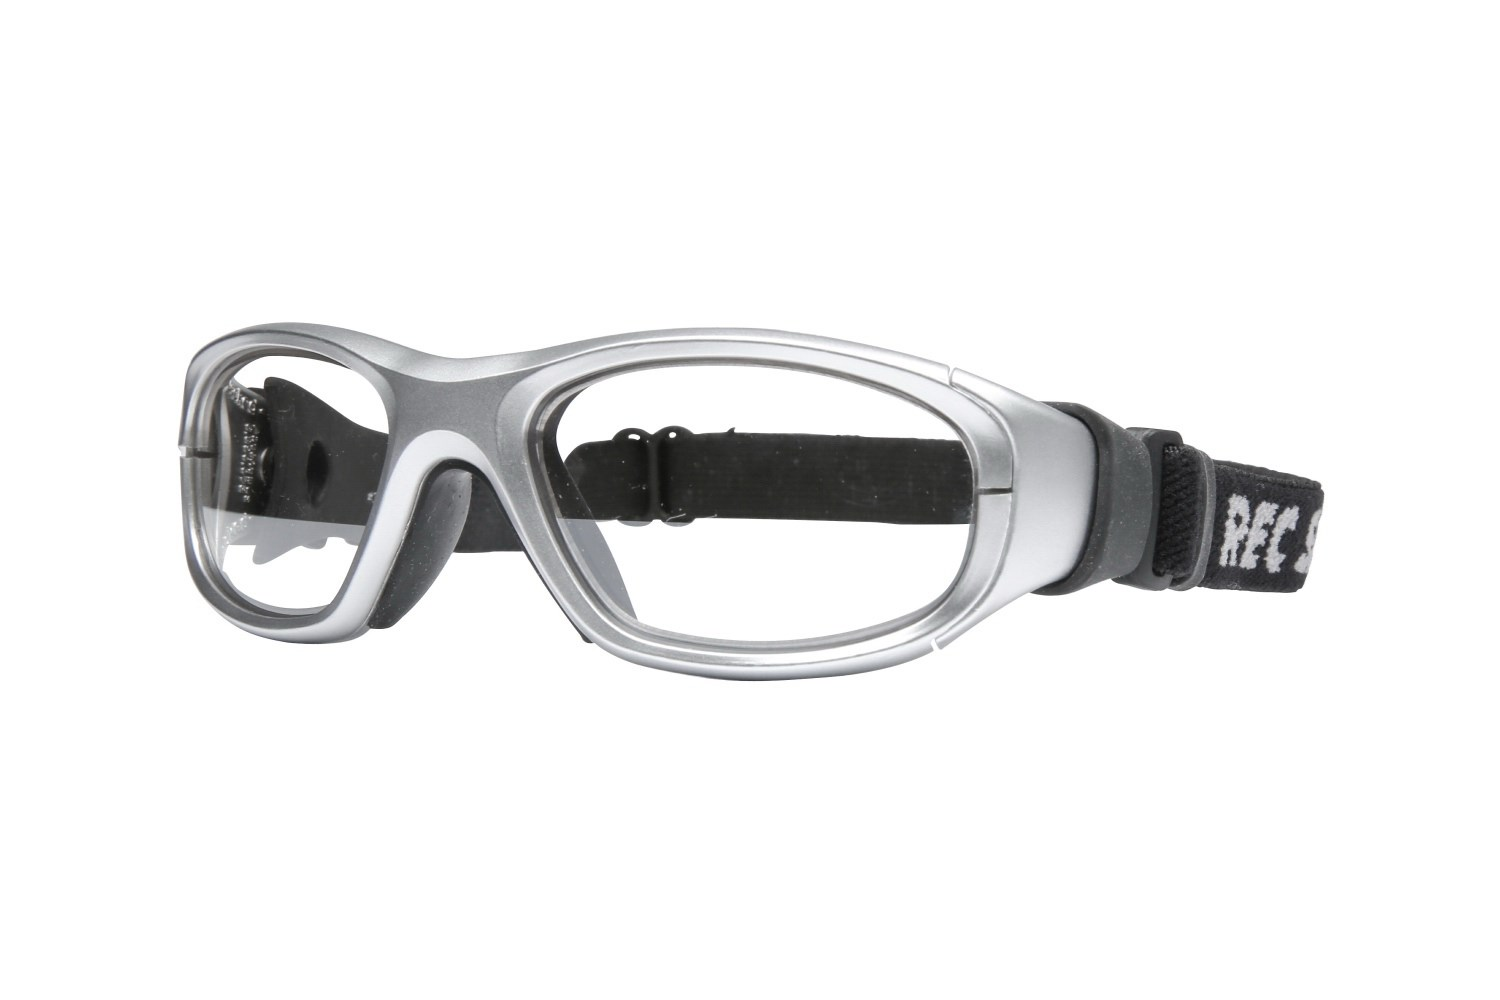 6ae0ec24005 ... Silver Plated UPC 731109775635 product image for Rec Specs Maxx 21  Prescription Eyeglasses